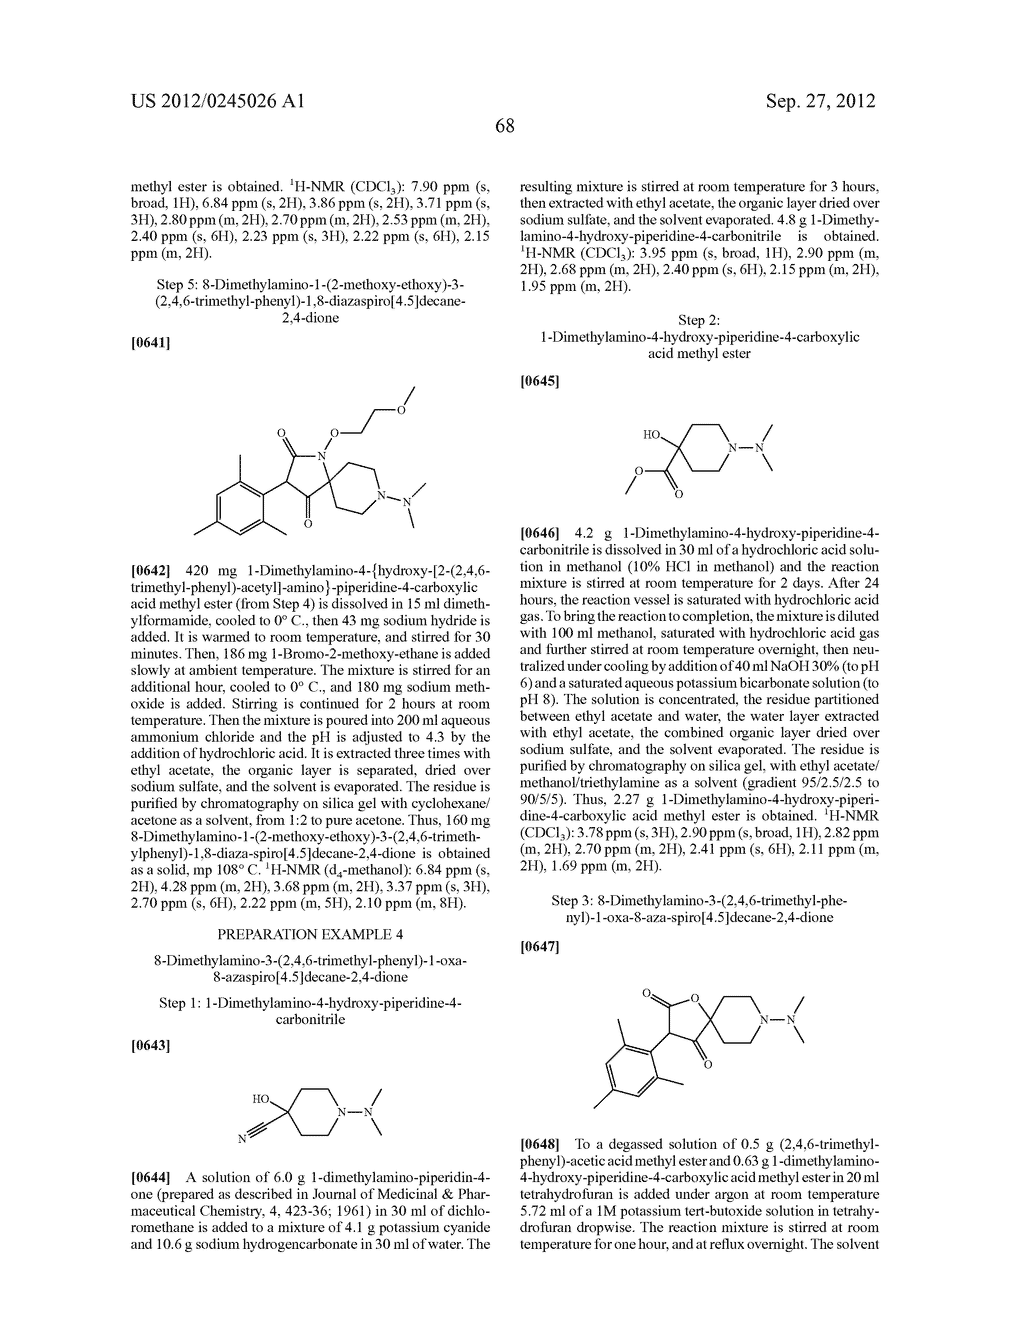 SPIRO FUSED 1-AMINO - PIPERDINE PYRROLIDINE DIONE DERIVATIVES WITH     PESTICIDAL ACTIVITY - diagram, schematic, and image 69